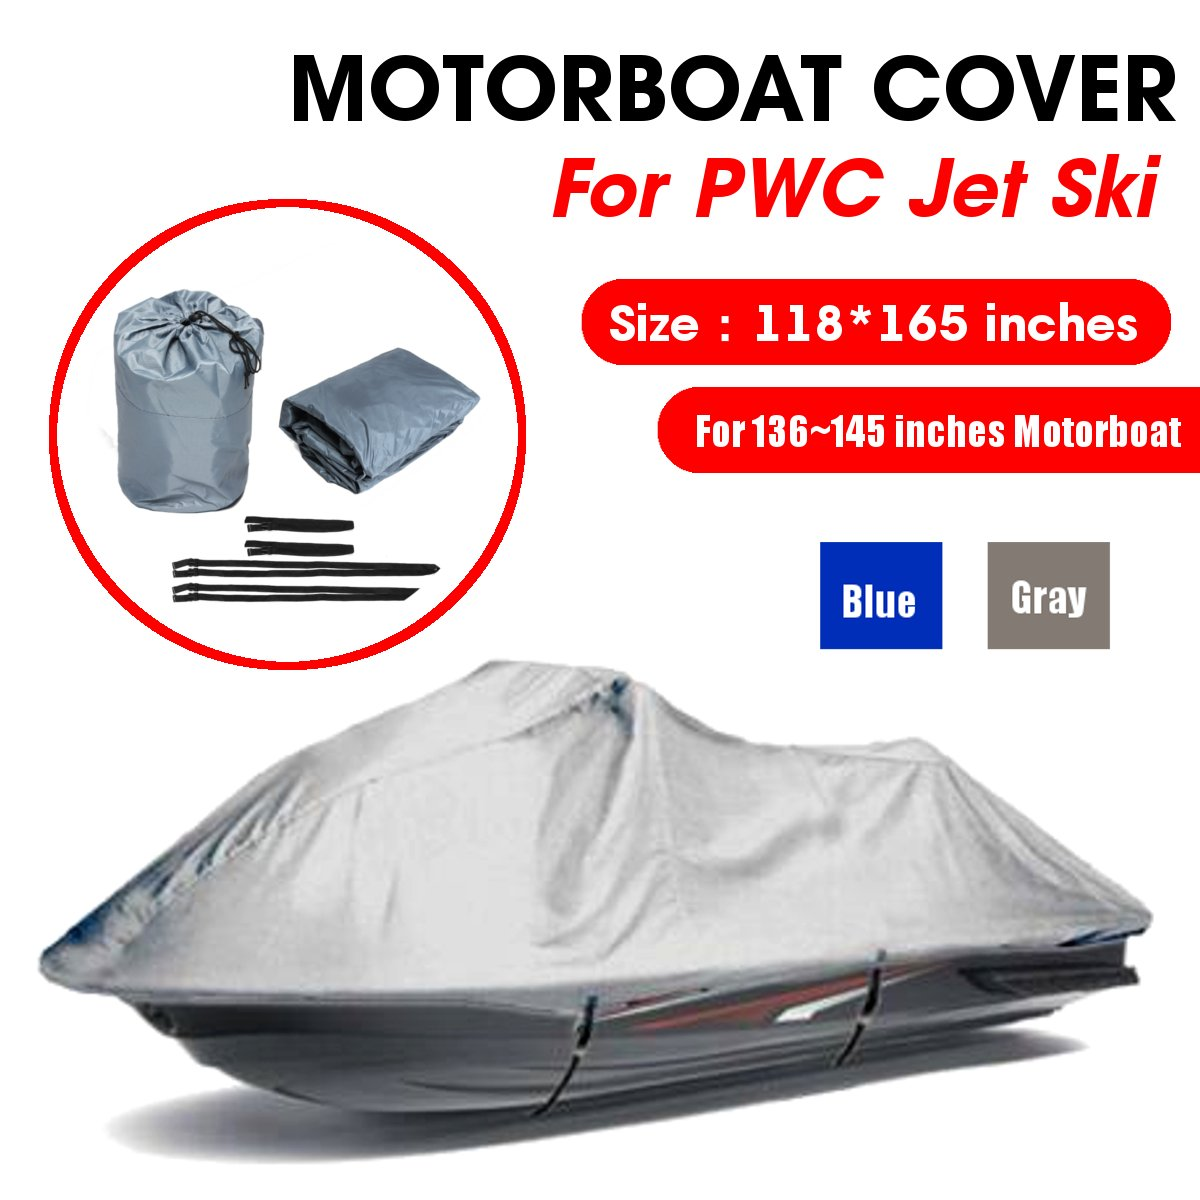 4.2x3m 210D Oxford Cloth Engine Protector Waterproof Trailerable Boat Cover Jet Ski Outboard Motor Hood Cover